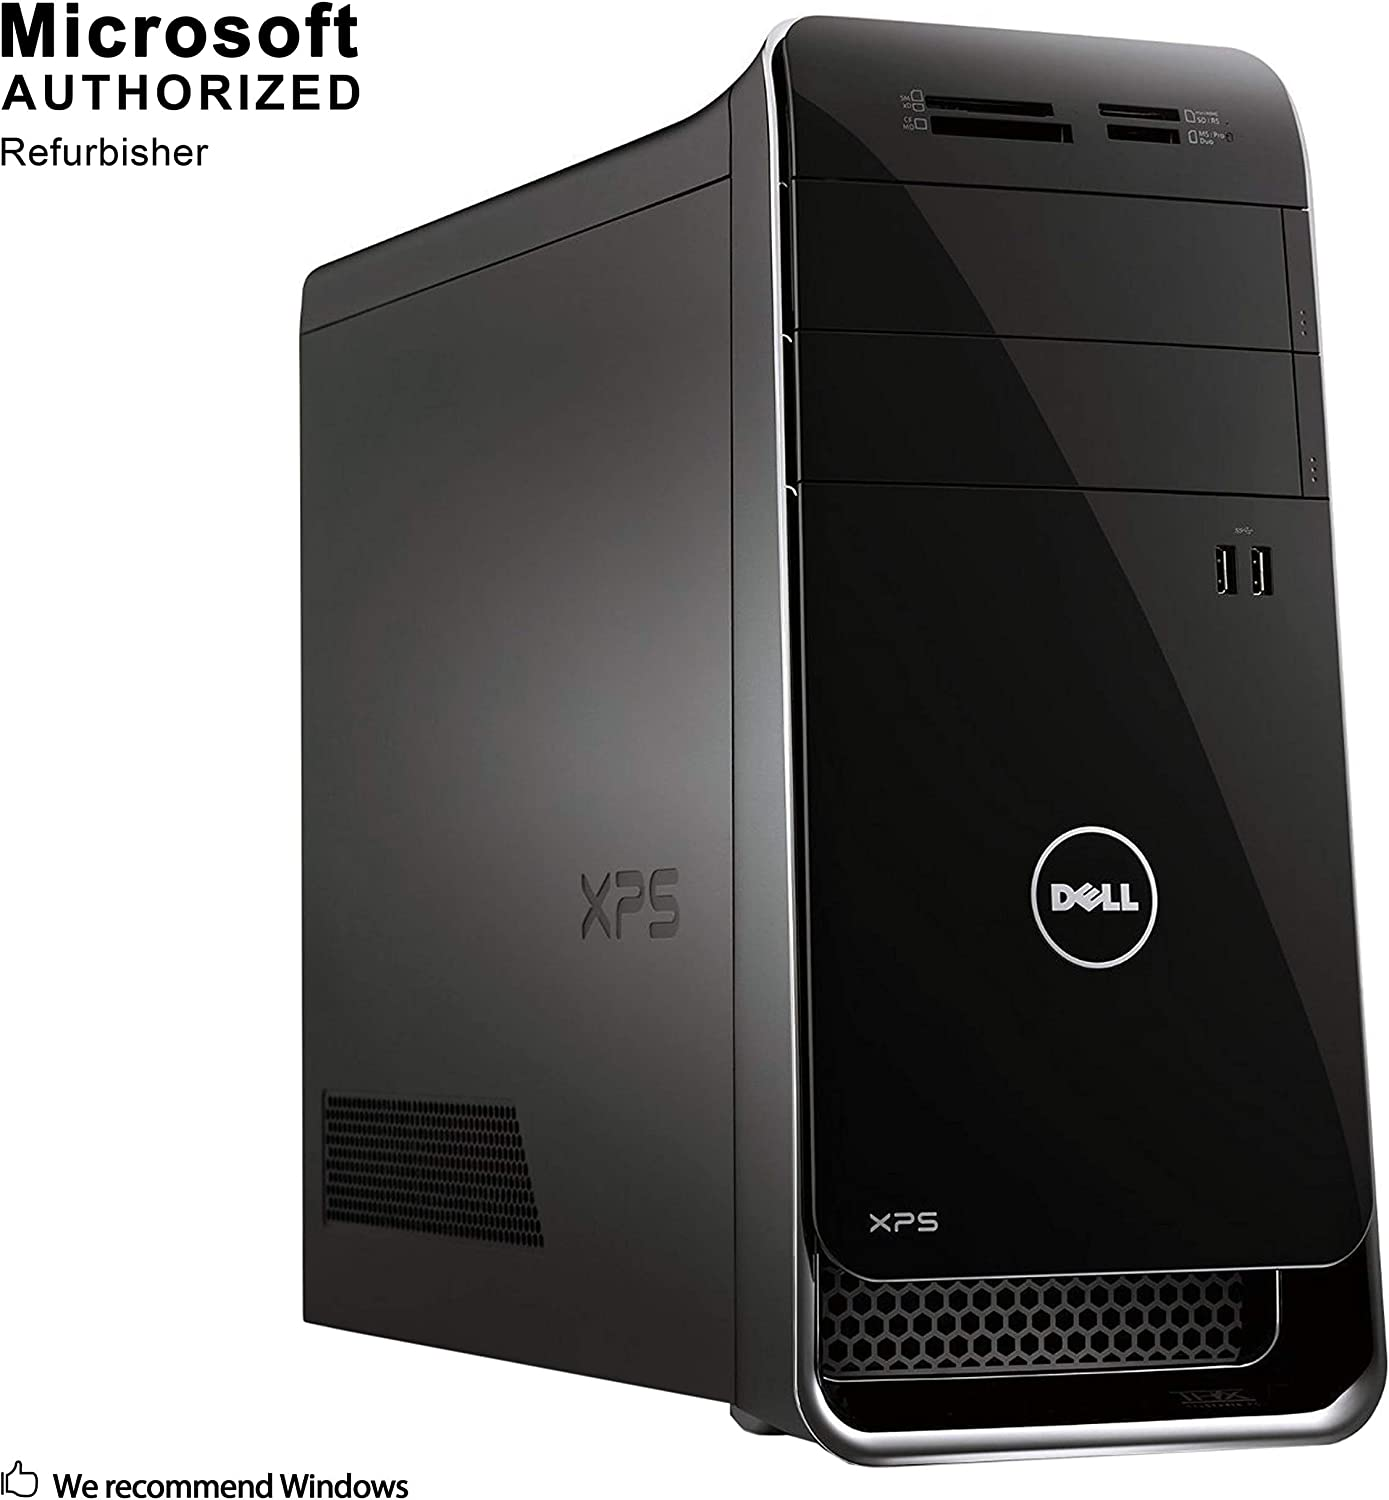 Dell XPS 8500 Tower Desktop PC, Intel Quad Core i5-3450 up to 3.5GHz, 16G DDR3, 256G SSD, Windows 10 Pro 64 Bit-Multi-Language Supports English/Spanish/French(Renewed)